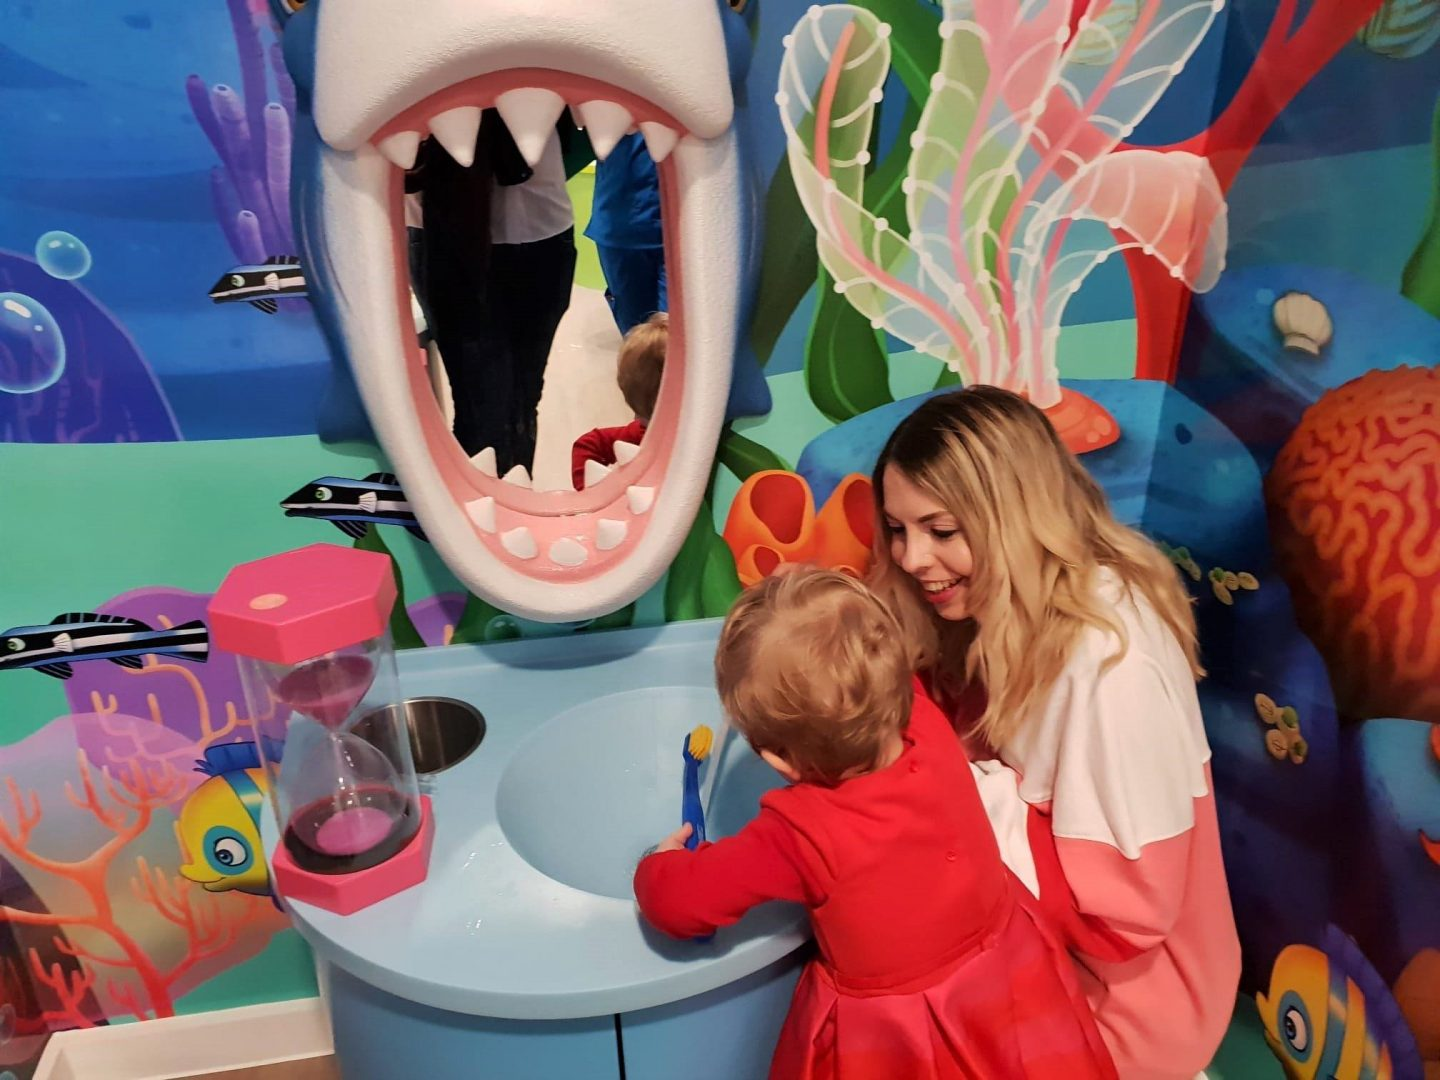 Toddler brushing shark teeth at Happy Kids Dental, Chelsea